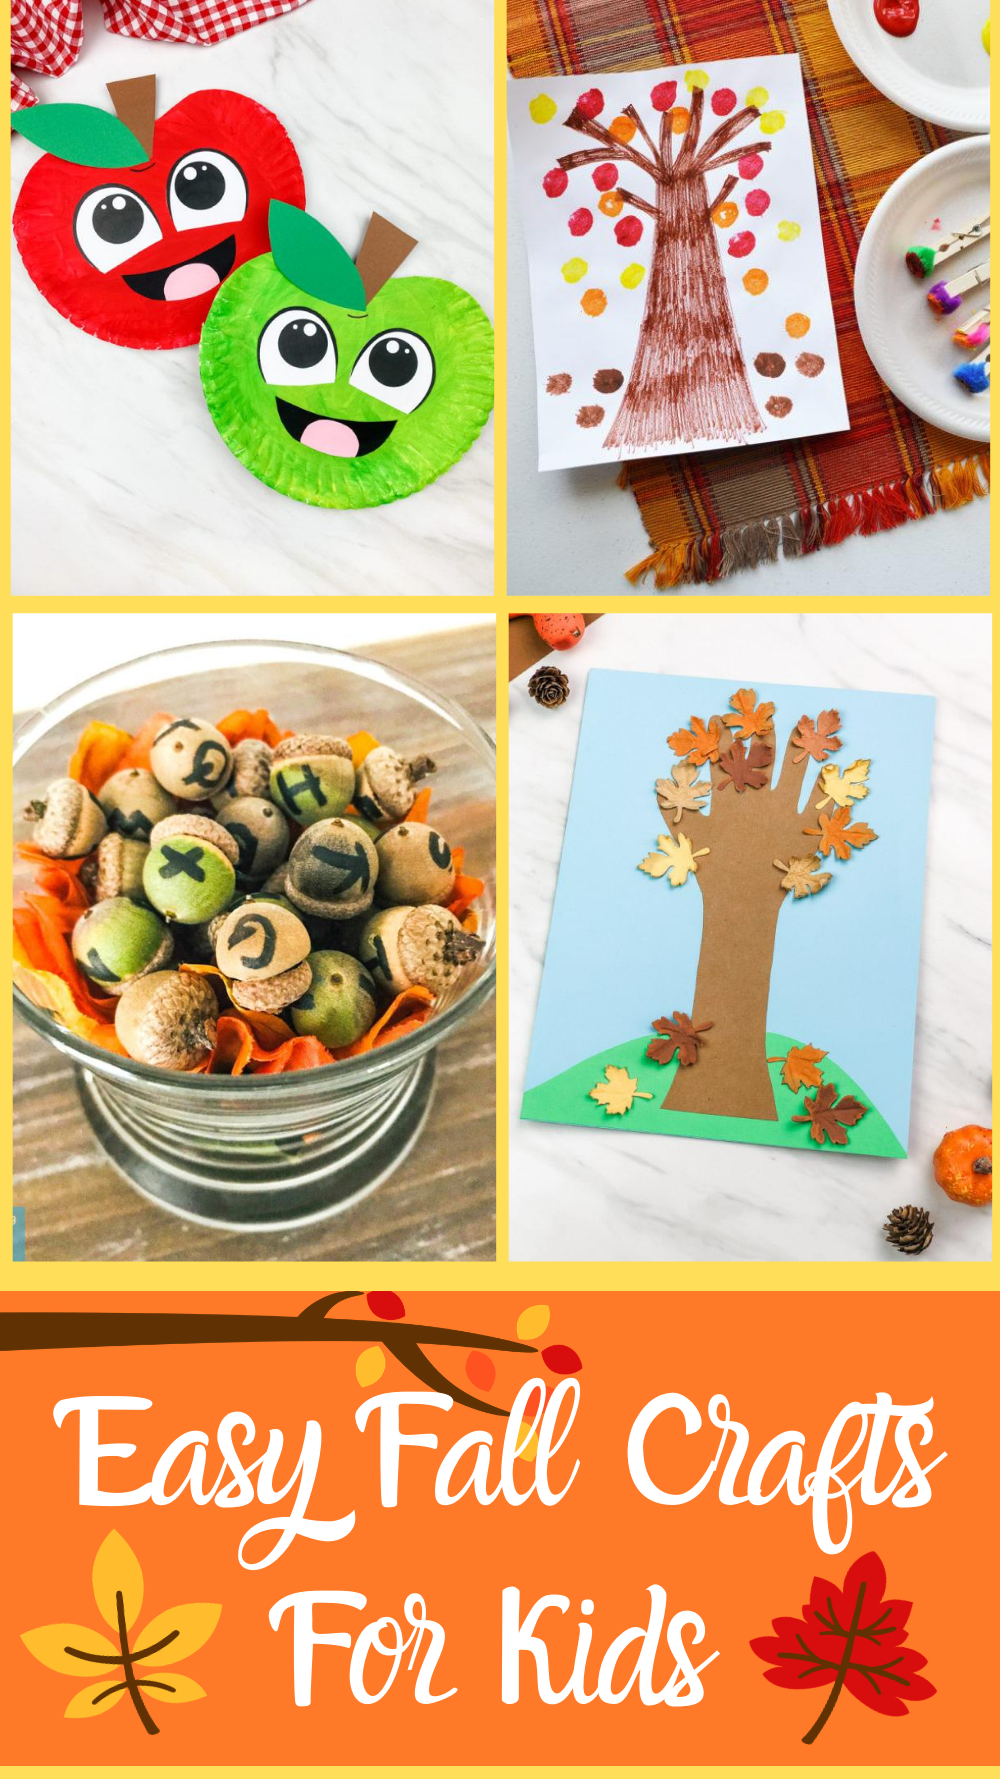 Easy Fall Crafts For Kids - 10 super cute and easy Fall crafts that your whole family is sure to enjoy!